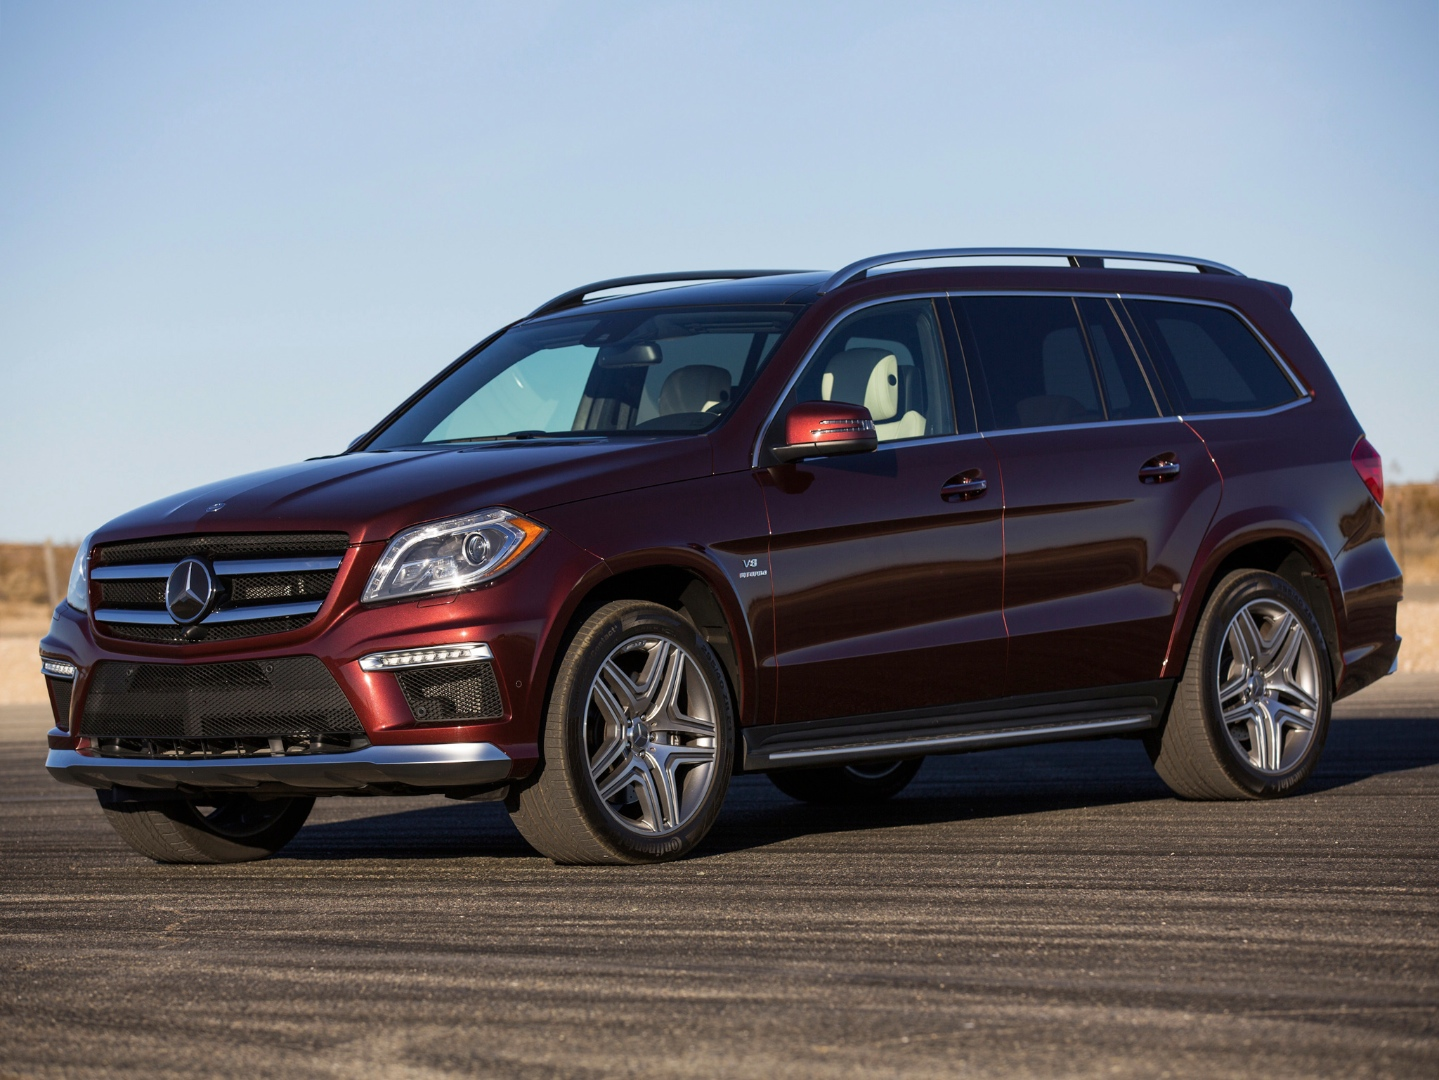 Mercedes benz usa recalls 69 gl class models autoevolution for Mercedes benz use